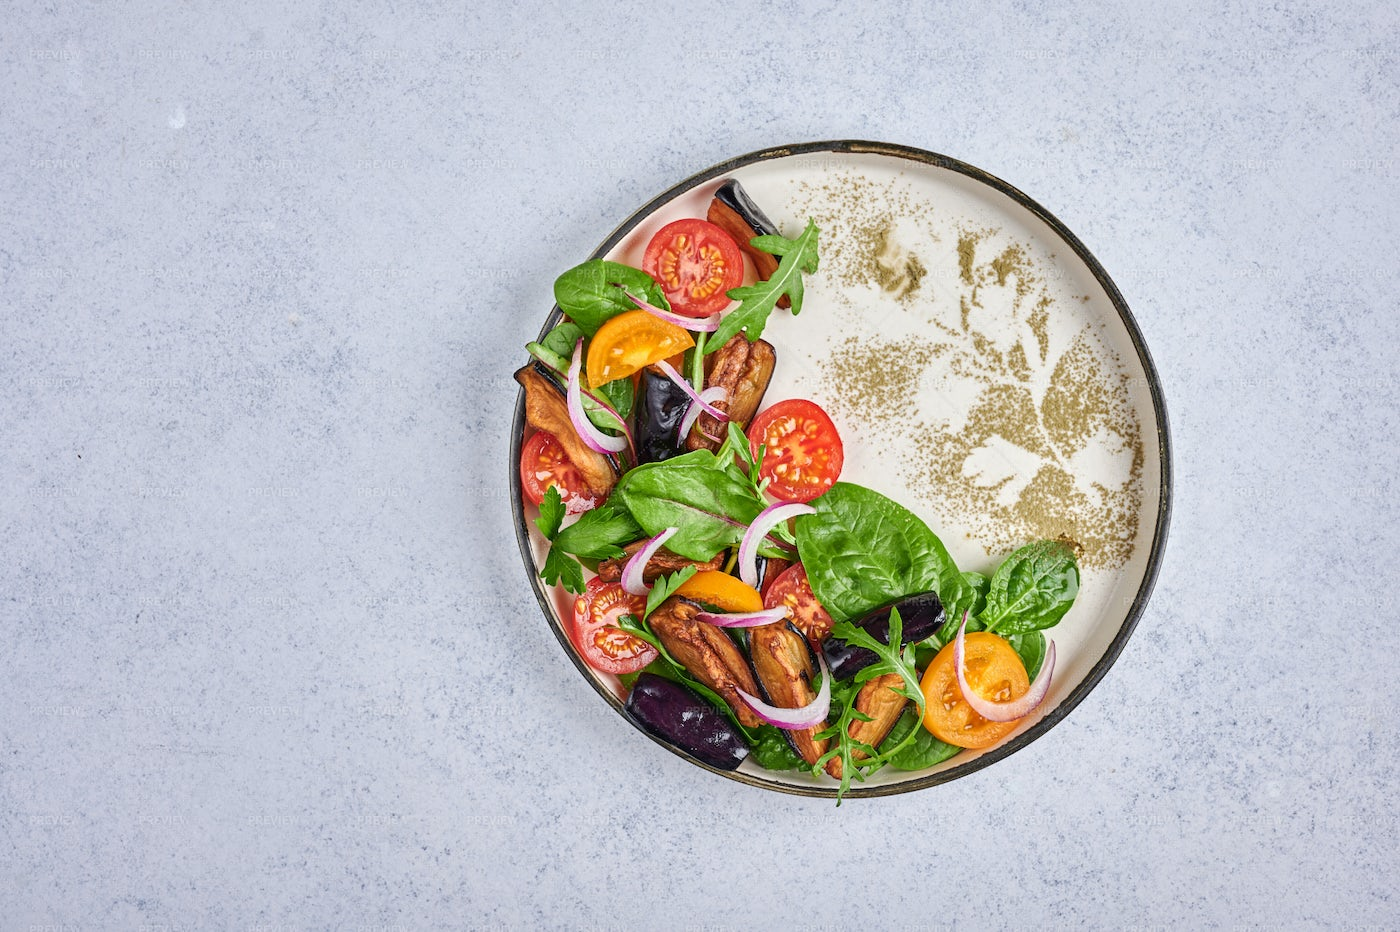 Styling Salad With Eggplant: Stock Photos